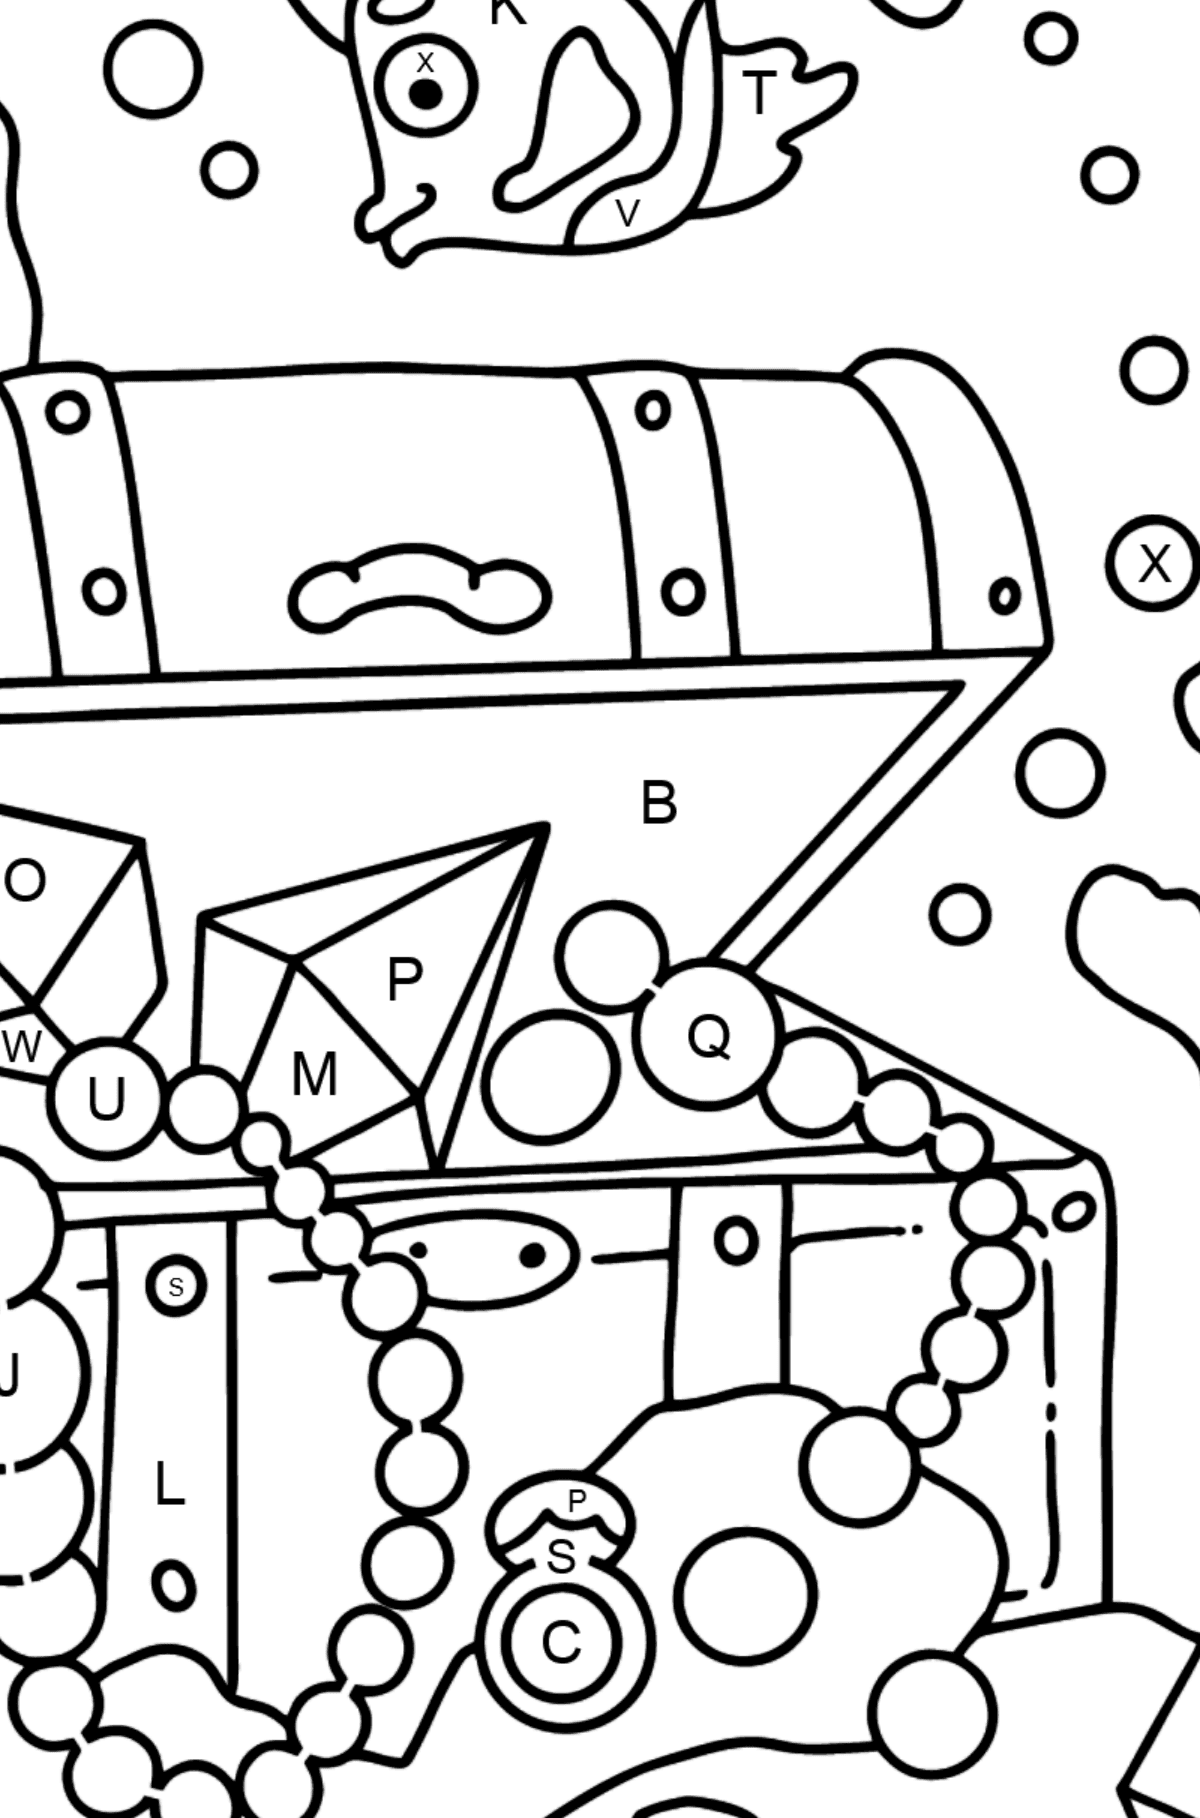 Coloring Page - A Fish is Looking for a Treasure - Coloring by Letters for Kids